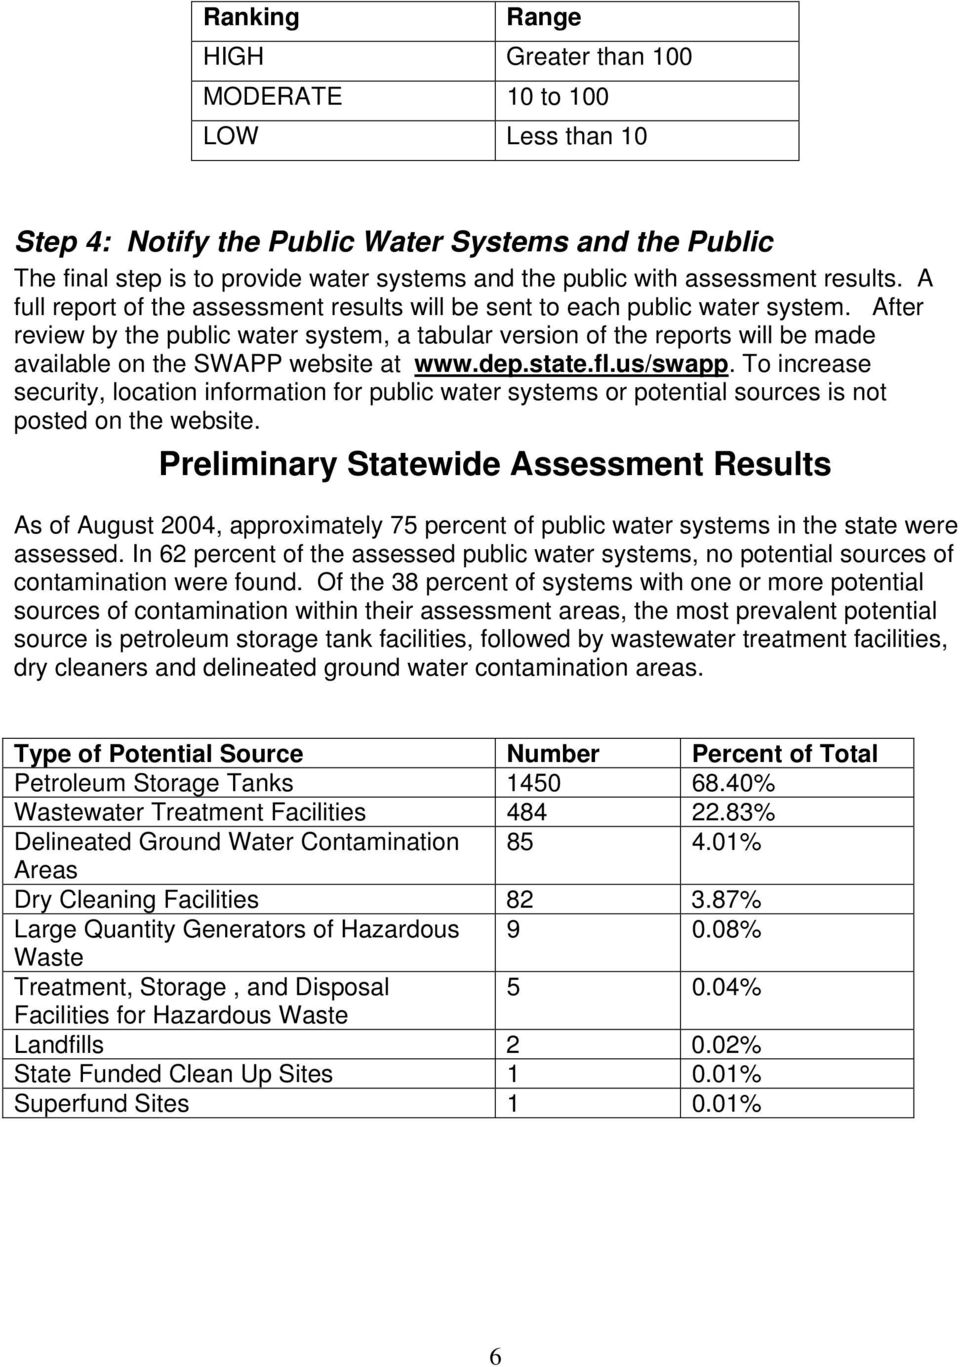 After review by the public water system, a tabular version of the reports will be made available on the SWAPP website at www.dep.state.fl.us/swapp.